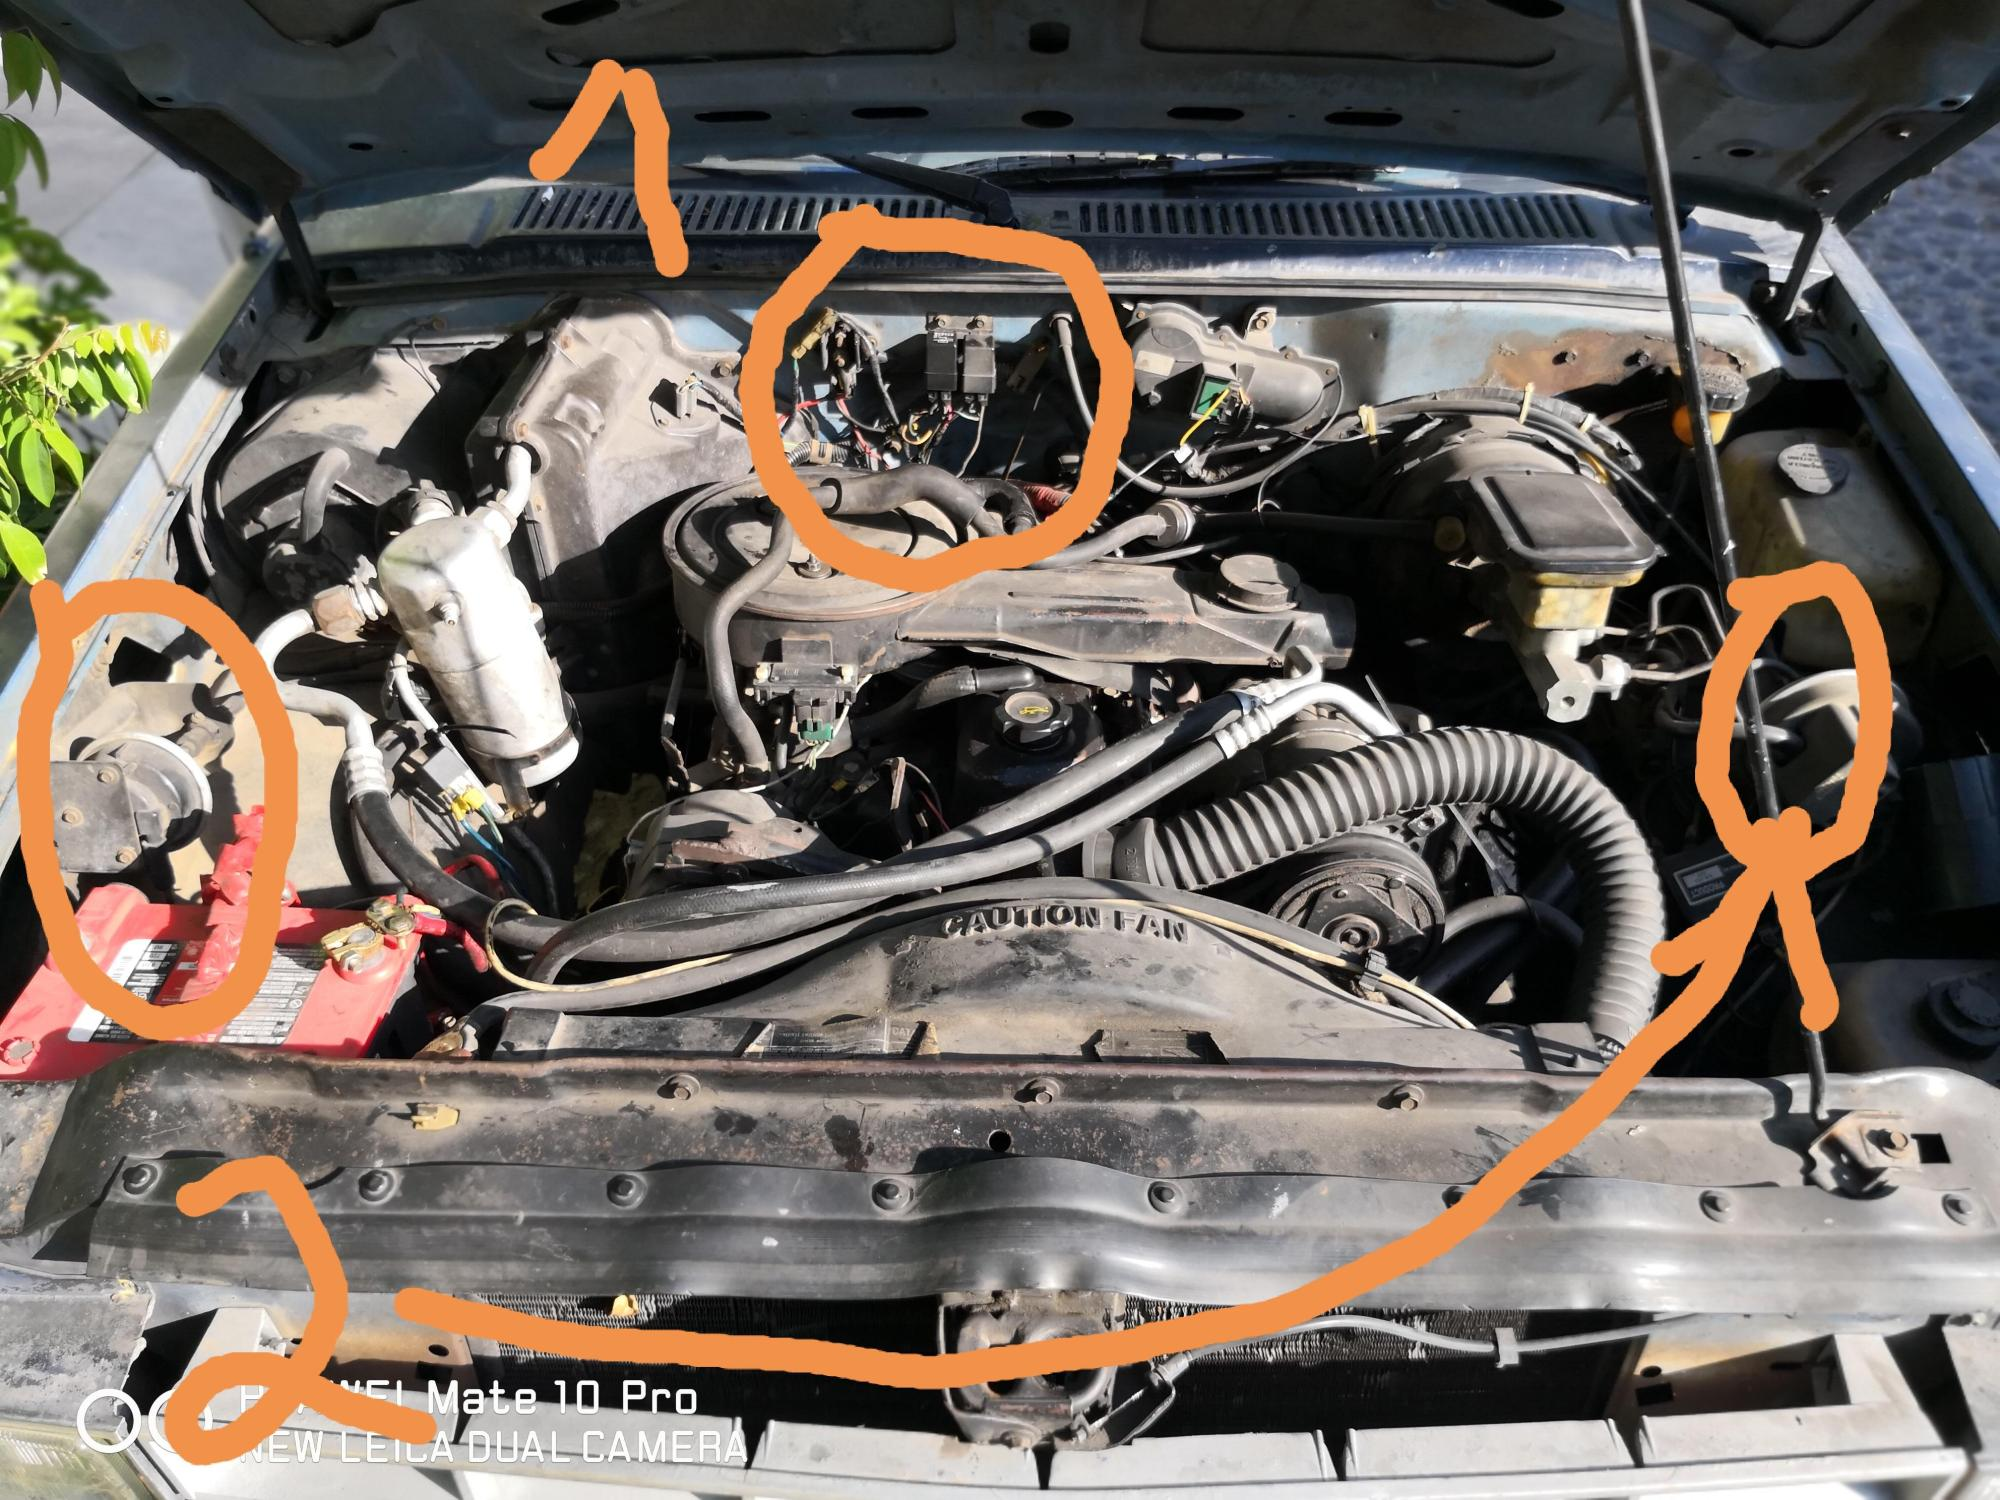 hight resolution of fuel pump relay location s10 1985 4x4 2 5 1 is that the fuel pump relay and why are the two 2 what are those and how can i know if they are working